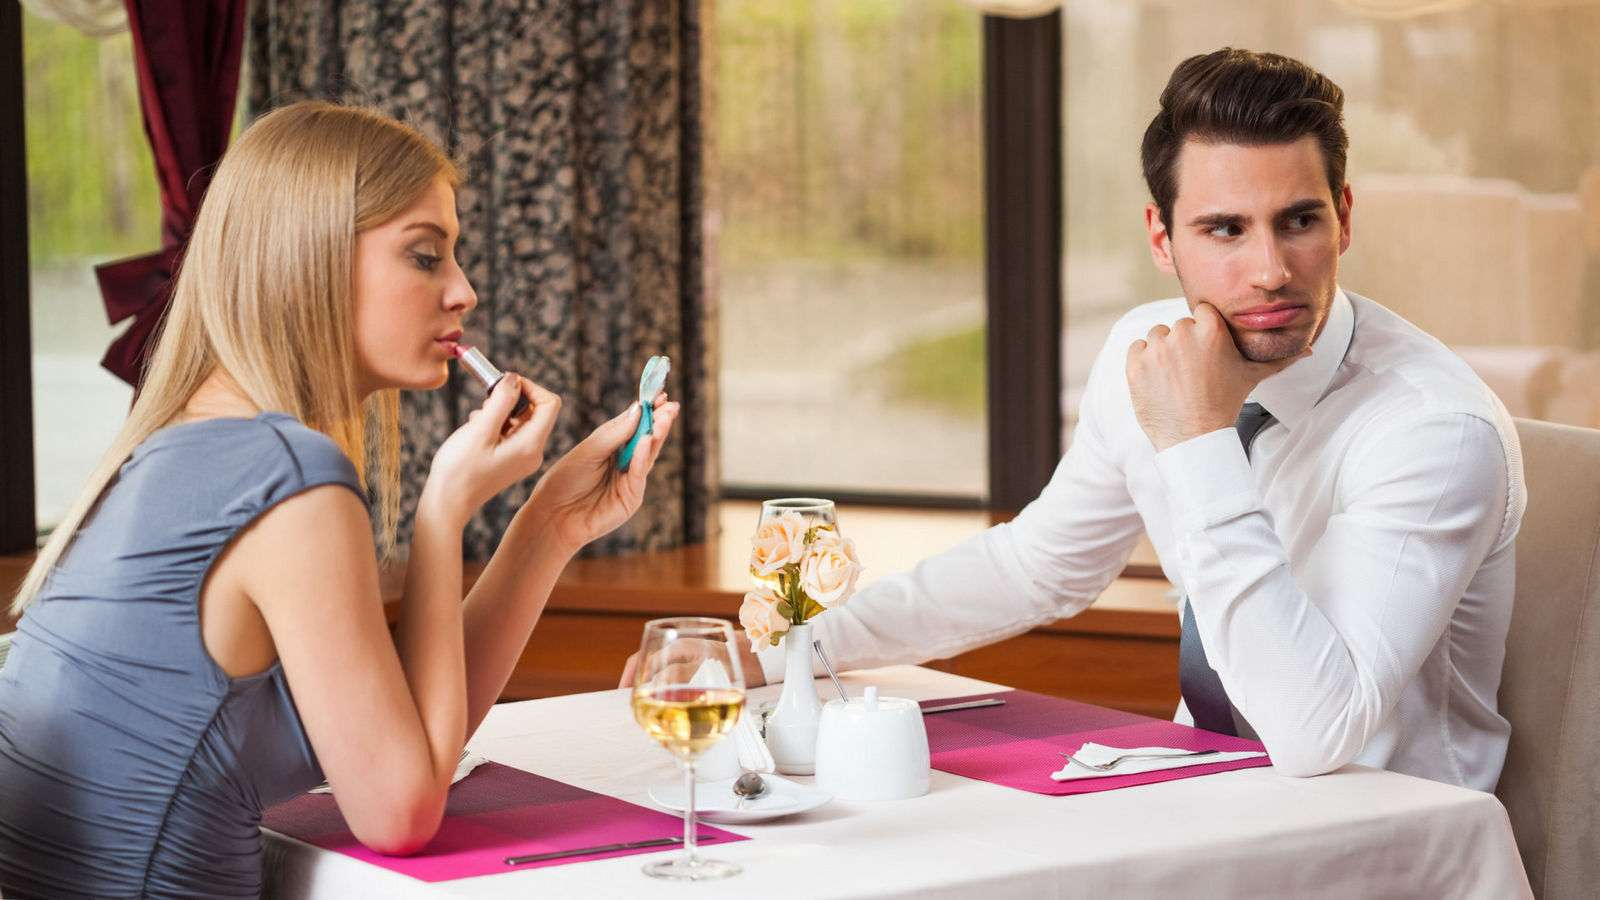 Dating myths about interracial dating